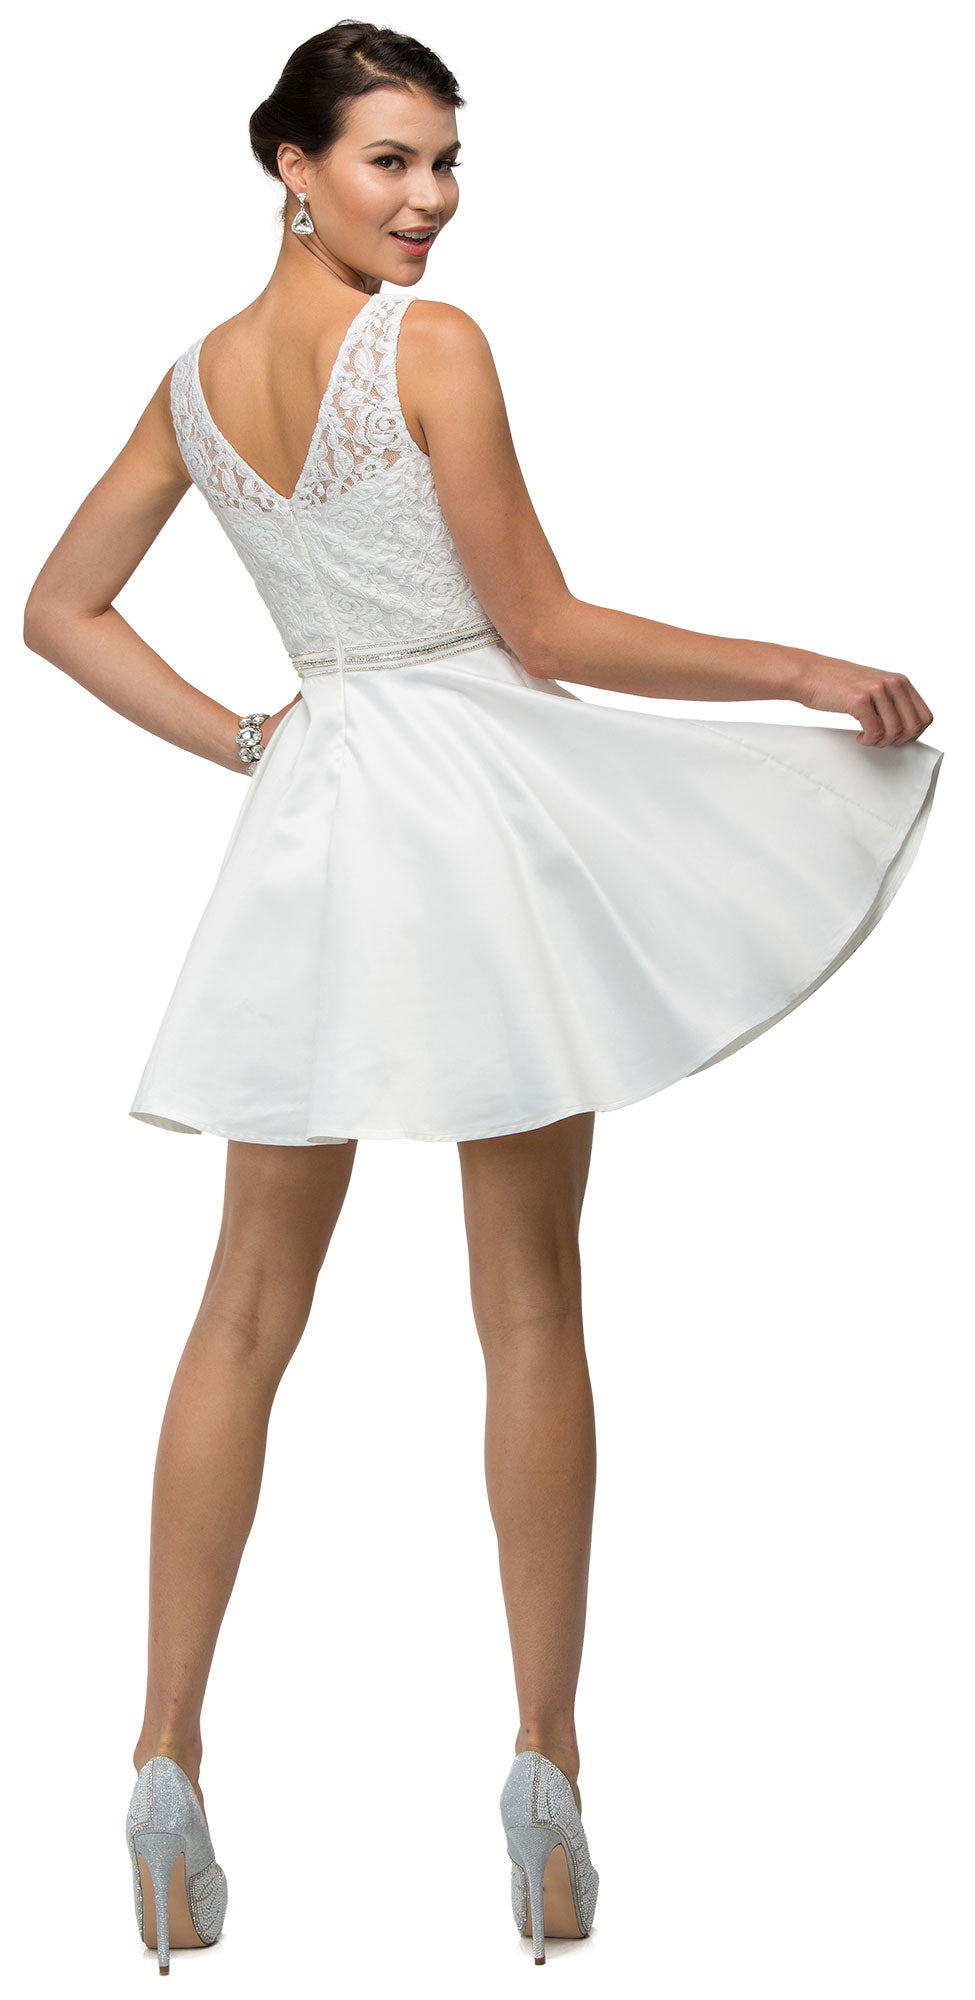 Image of Lace Bodice Beaded Waist Short Homecoming Graduation Dress back in Off White